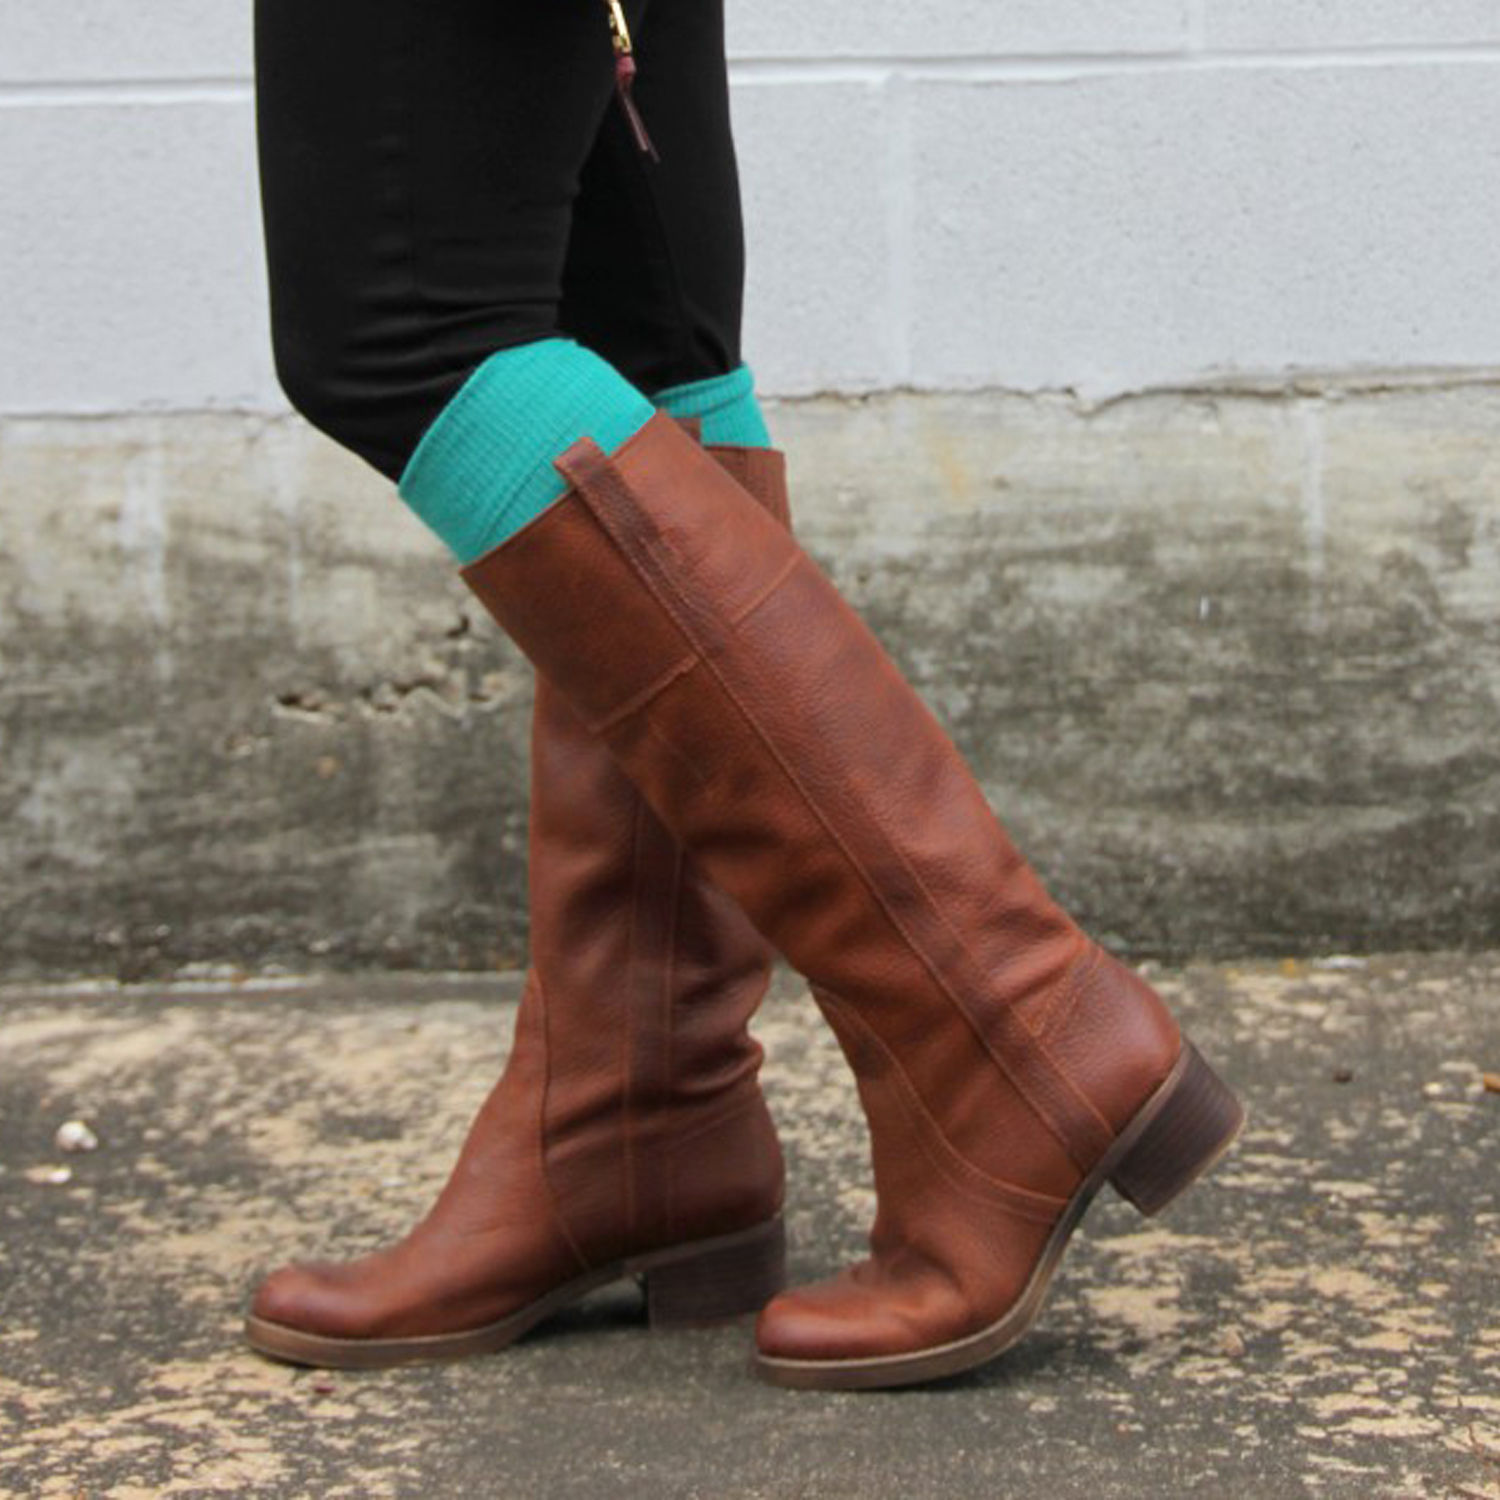 flat heel boots with teal socks